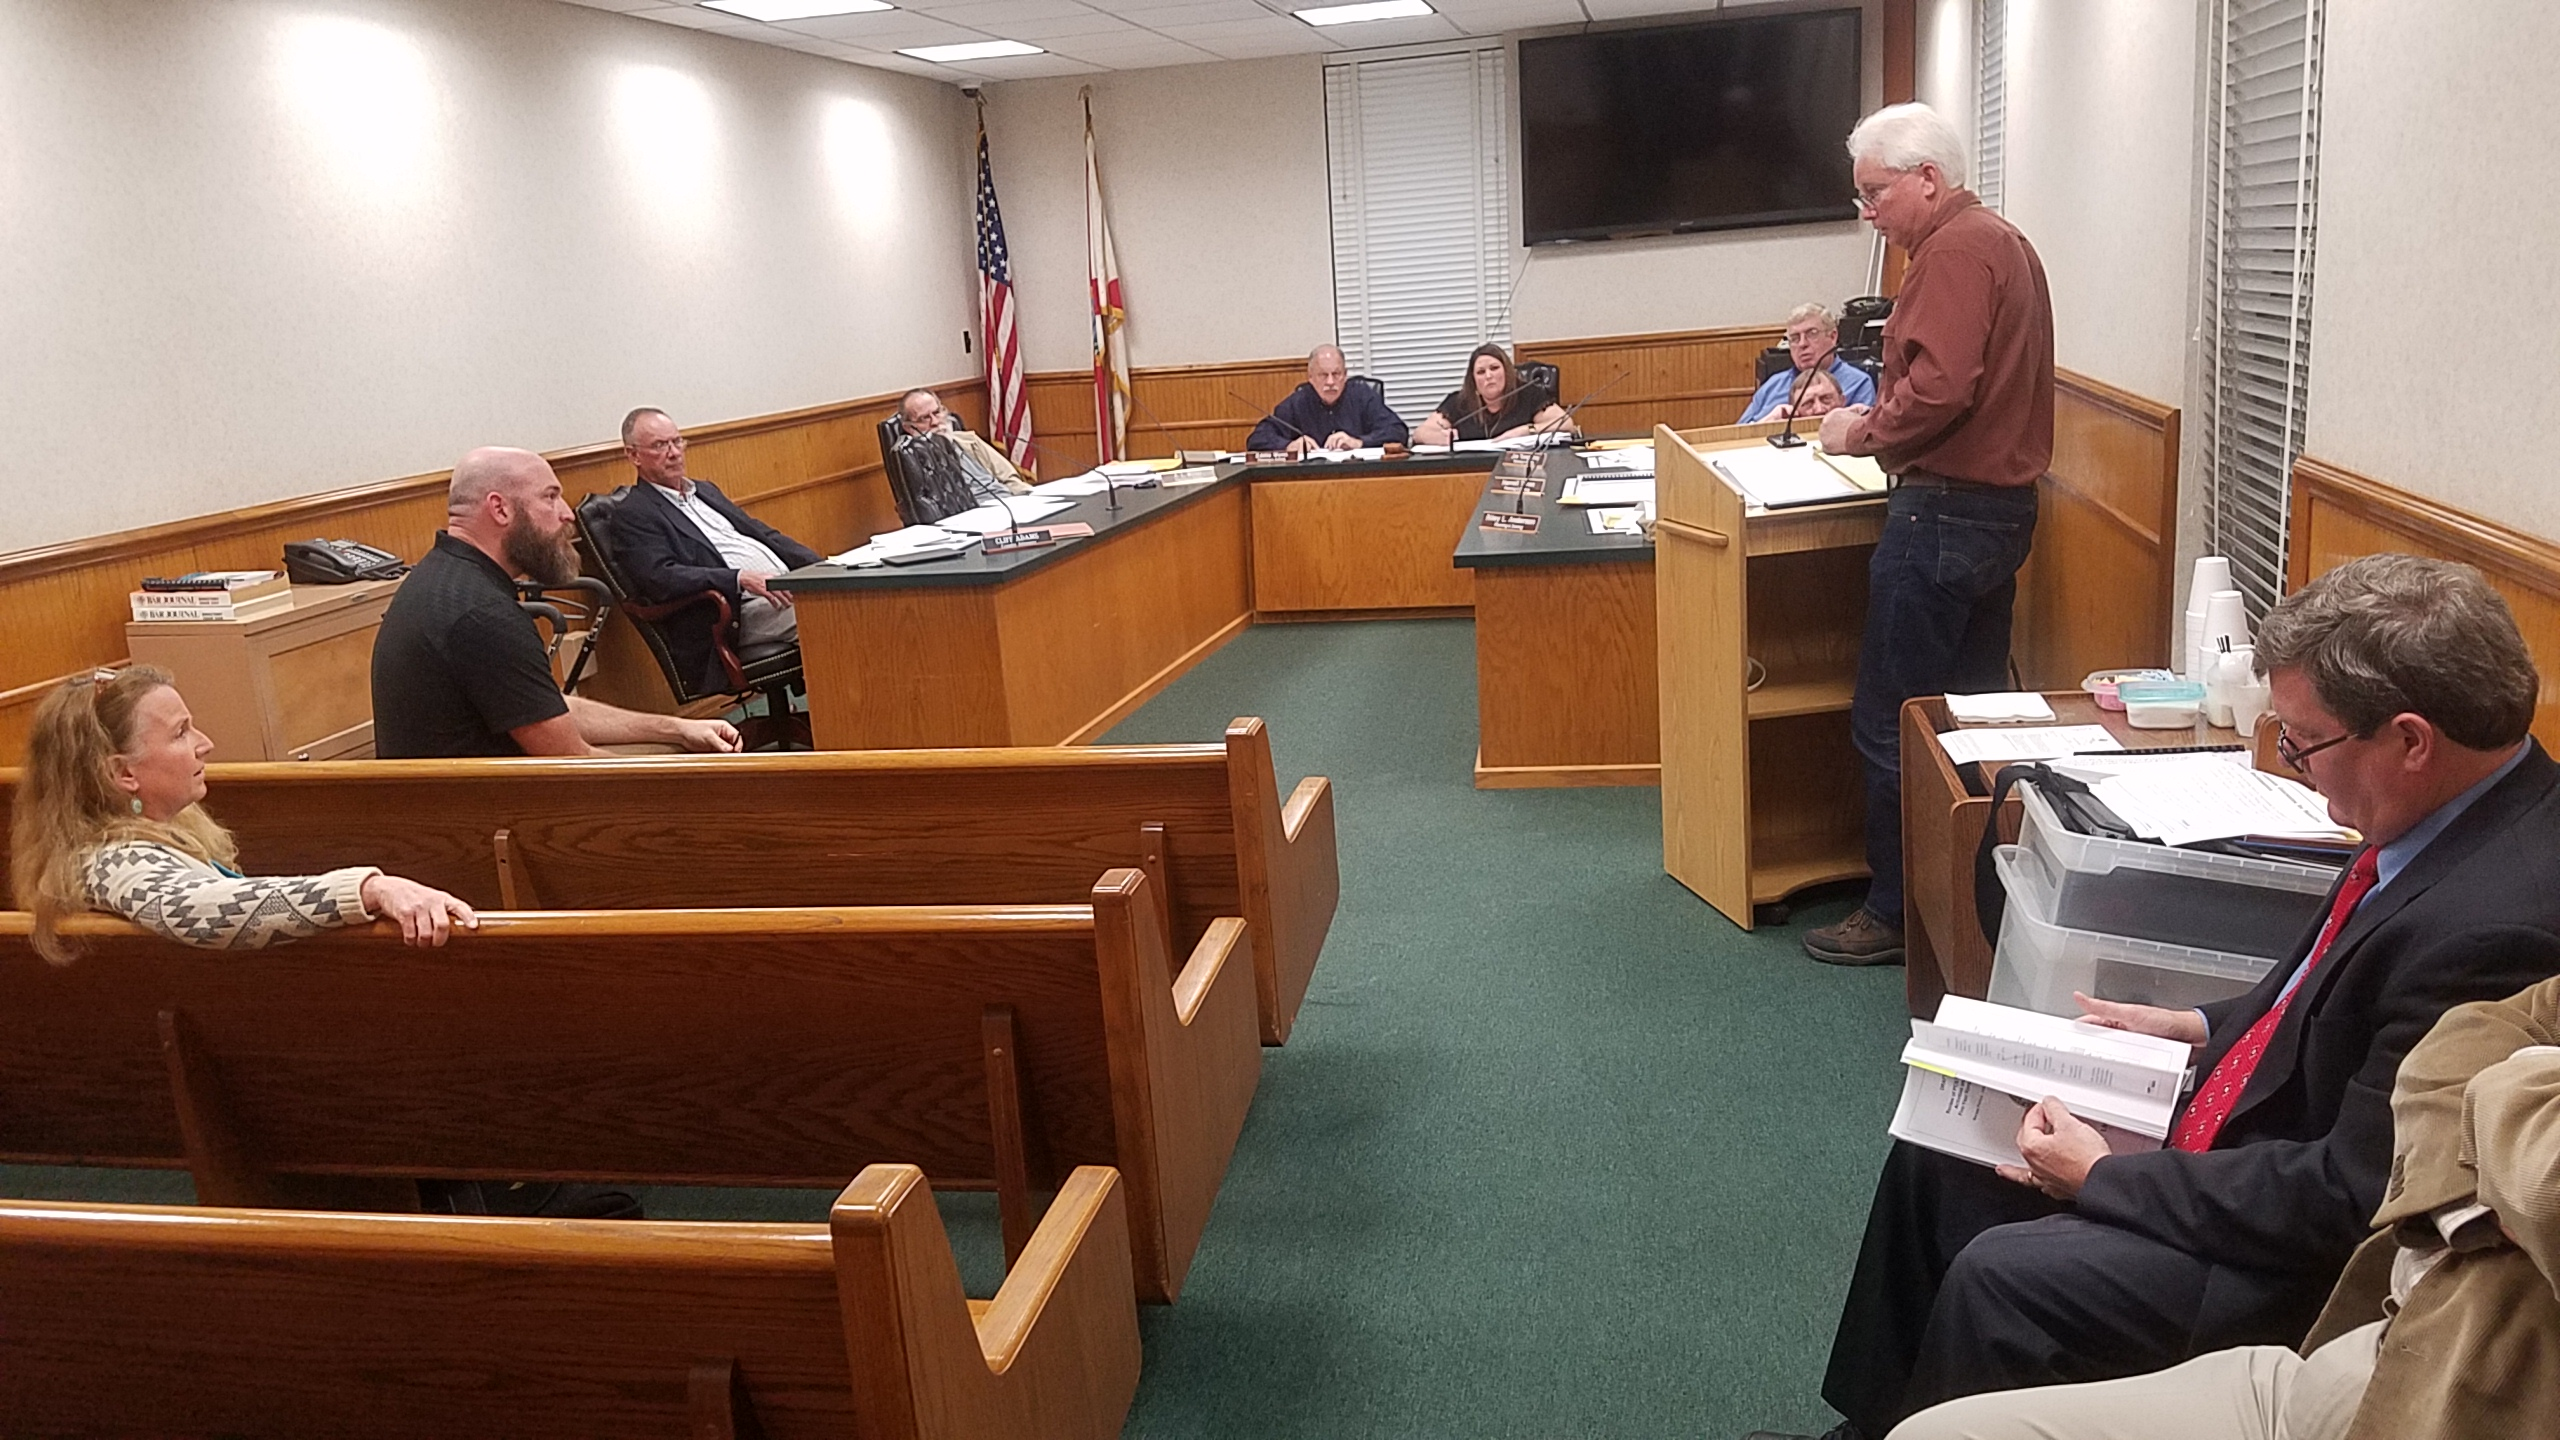 2560x1440 Some of the cast; Cliff Adams took notes throughout, Public Comment, in PCS Phosphate mine permit Public Hearings, Jasper, FL, by John S. Quarterman, for WWALS.net, 23 January 2018